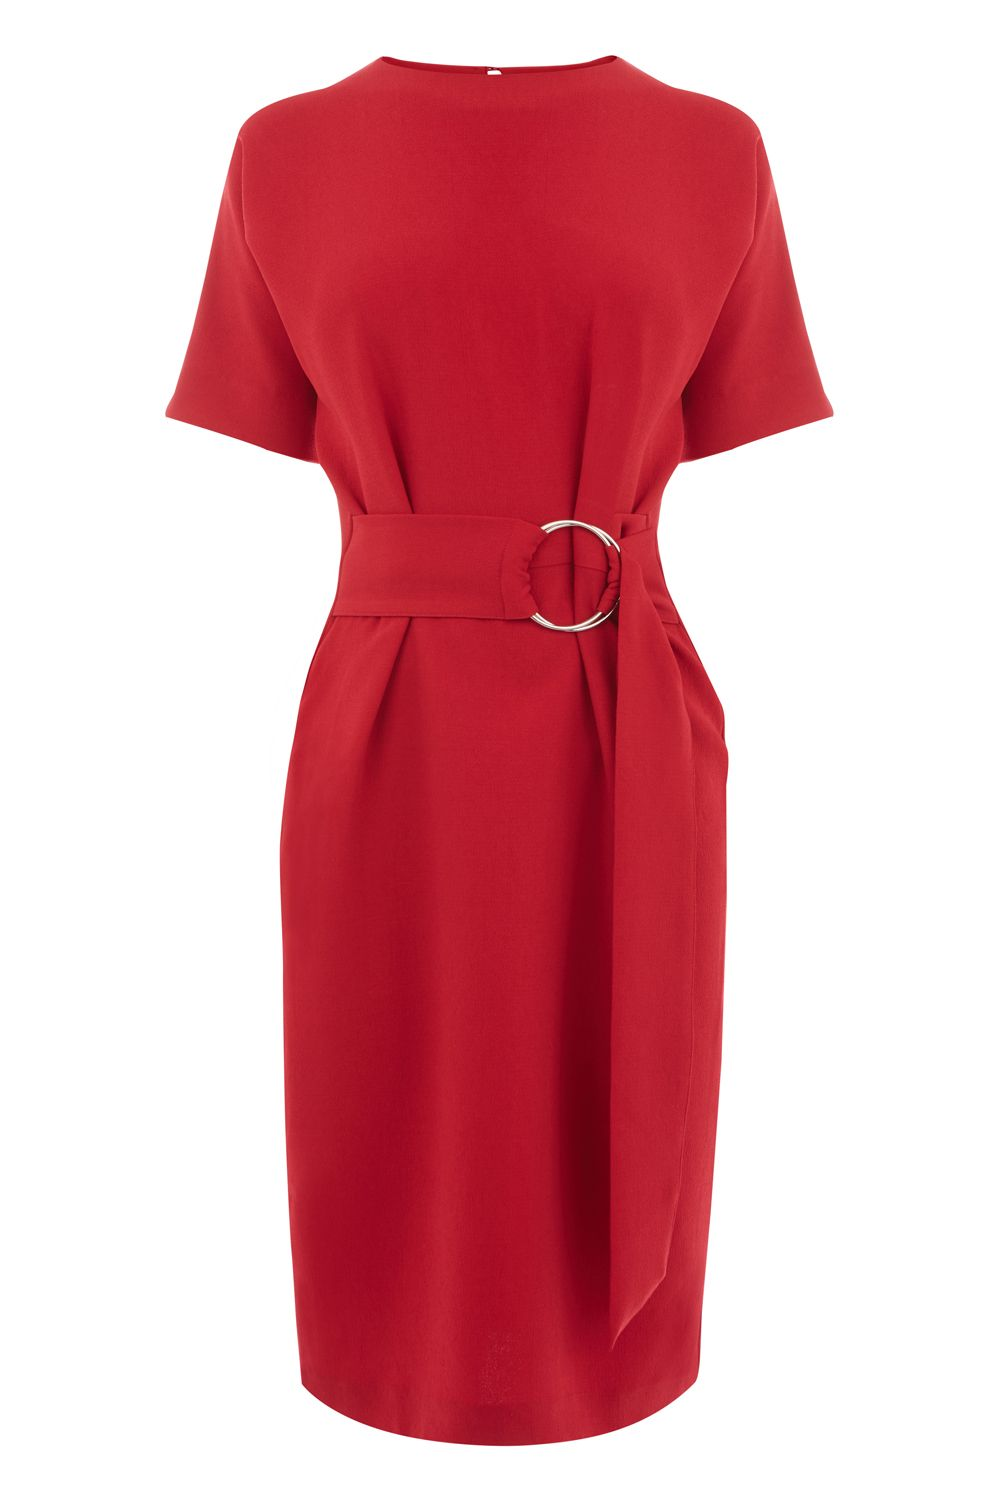 Warehouse O Ring Dress, Dark Red